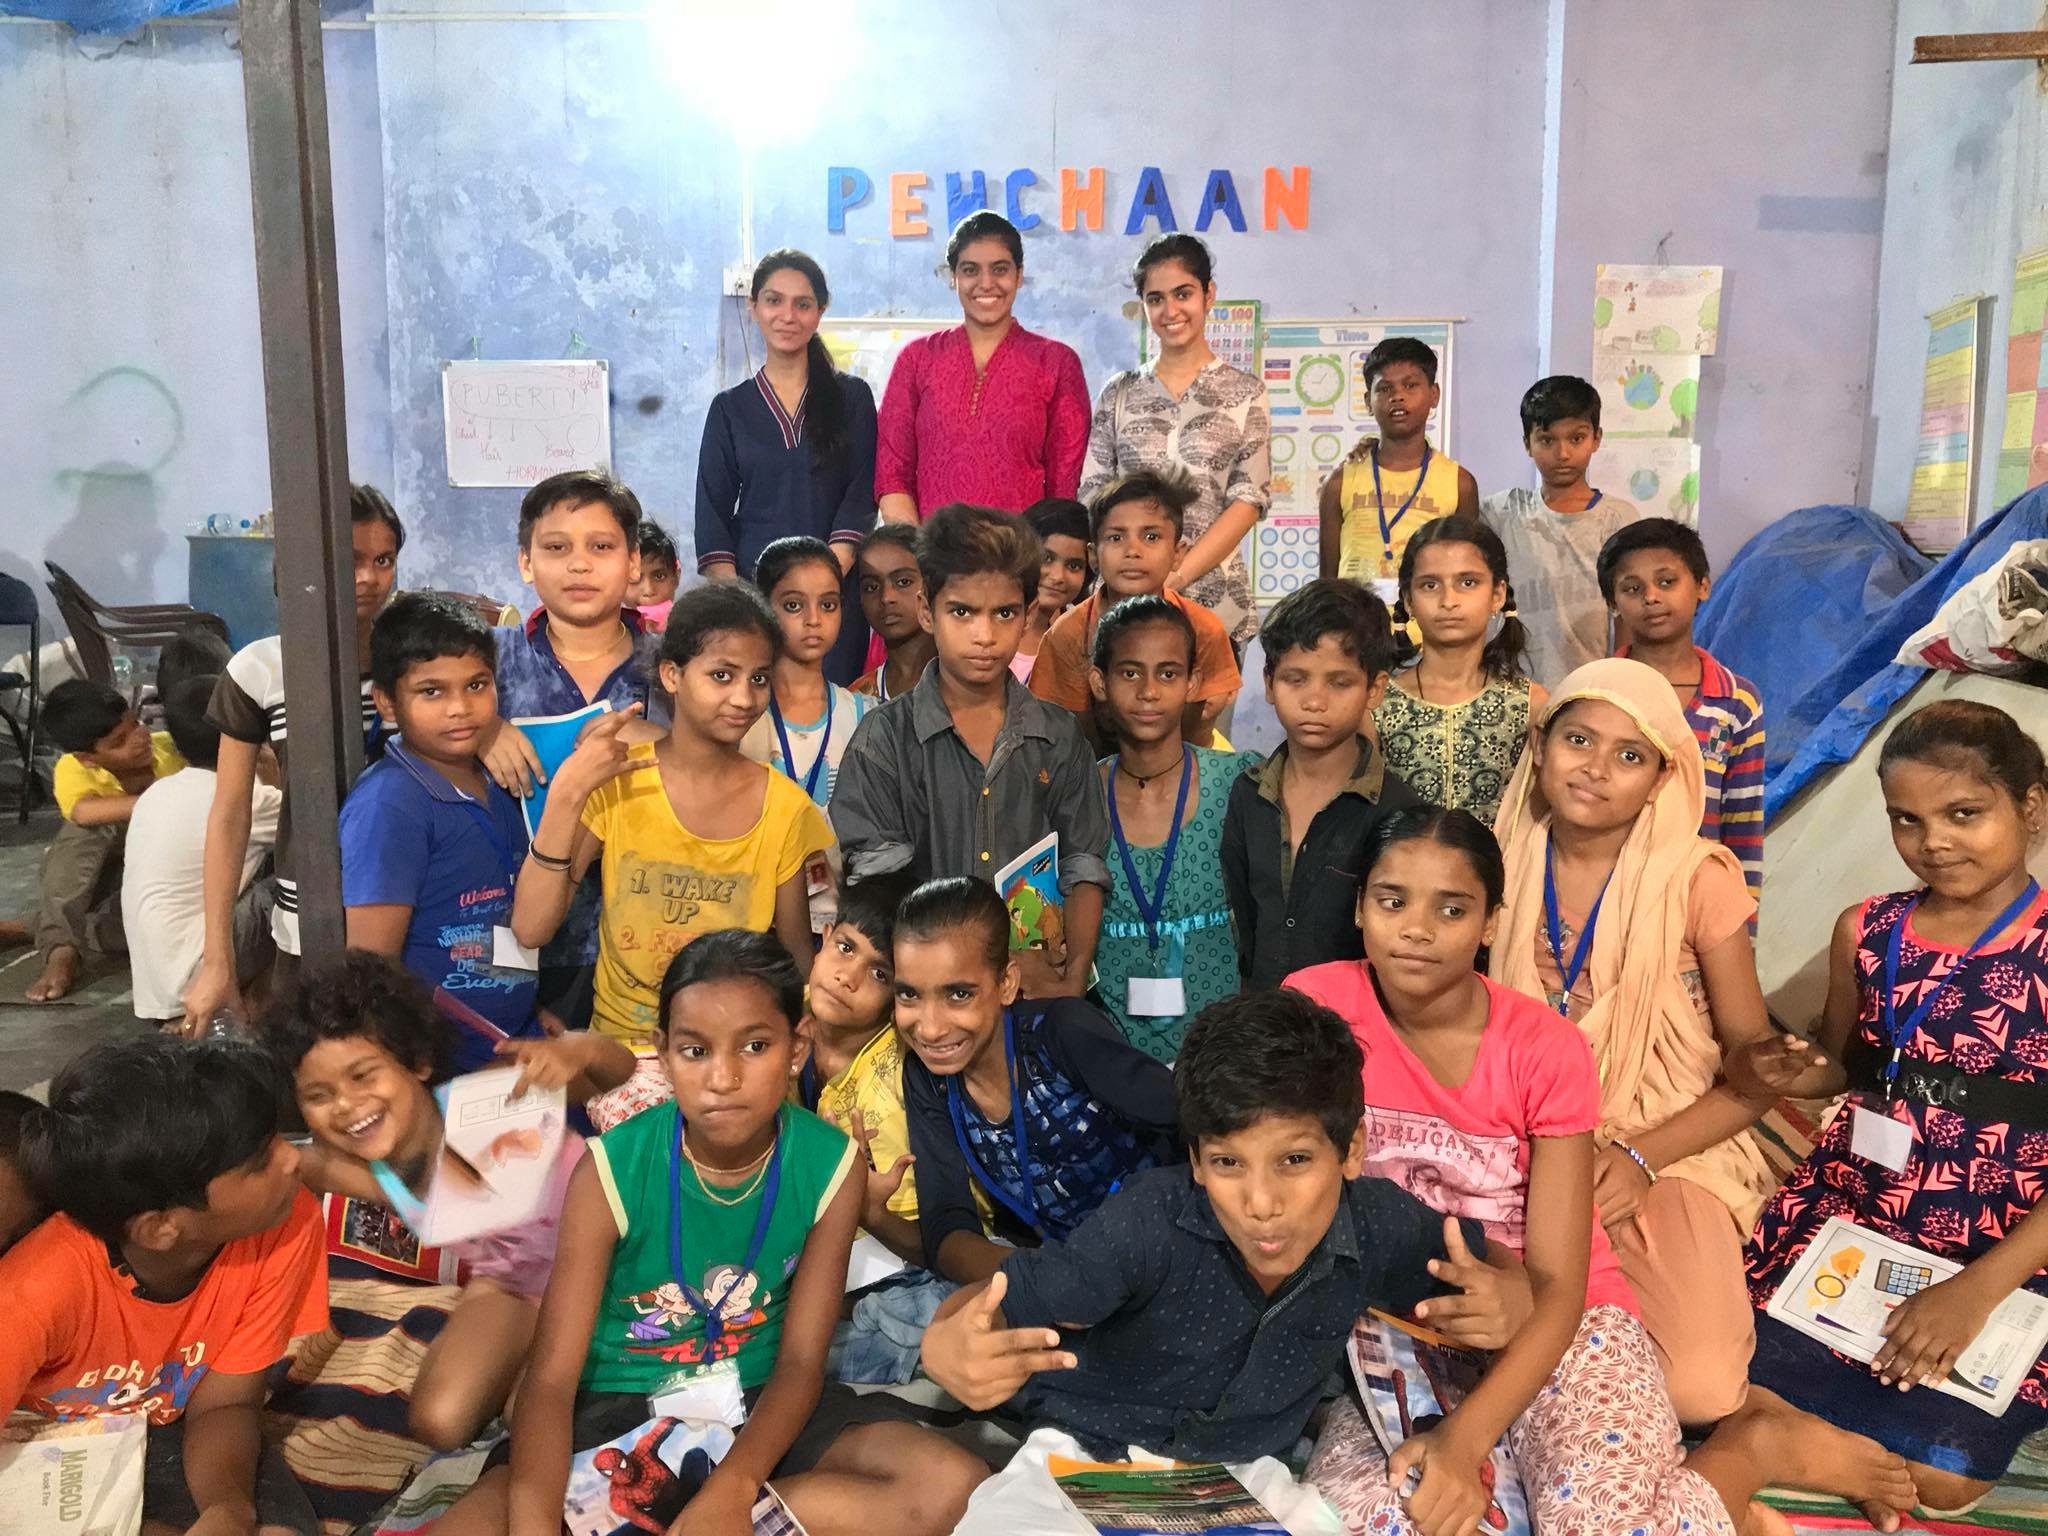 PEHCHAAN: THE STREET SCHOOL